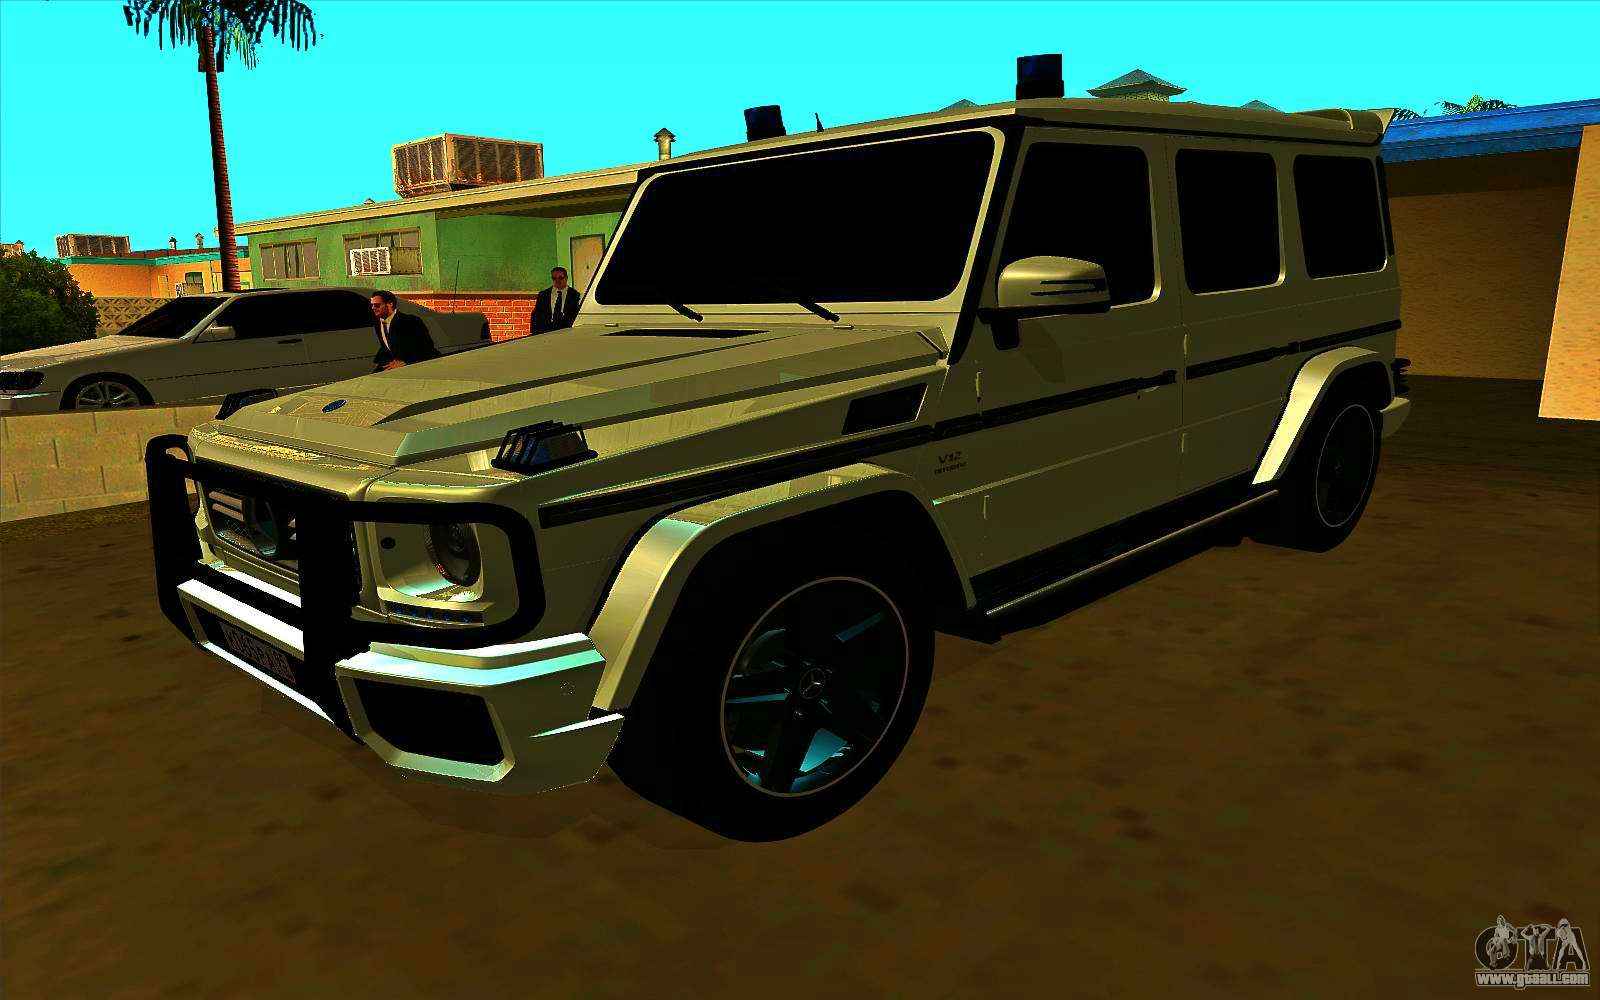 gta san andreas mercedes benz g65 amg with 28465 Mercedes Benz G65 Amg 2013 on 32906 Mercedes Benz G65 Amg Hamann besides 47496 Mercedes Benz G65 Amg in addition 22169 Mercedes Benz G500 Limousine in addition 59640 Mercedes Benz G65 Amg Carbon Edition also 24154 Mercedes Benz G65 Amg 2013.